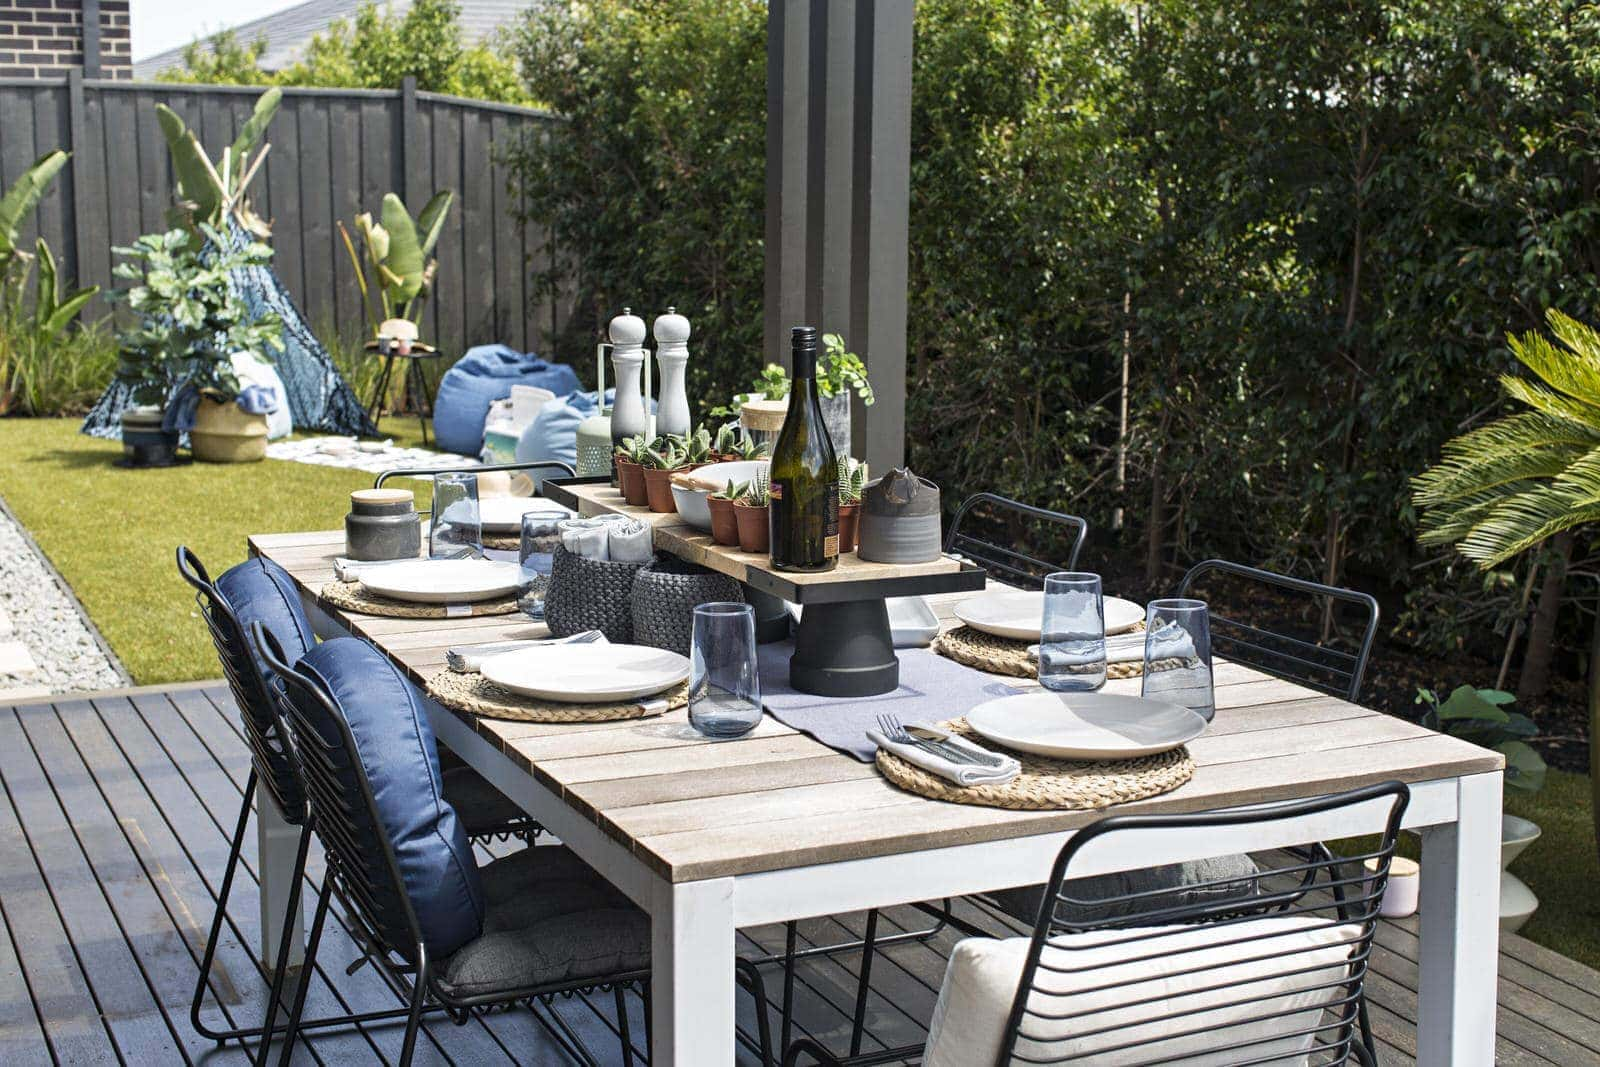 Backyard Makeover with Kmart Outdoor Furniture - TLC Interiors